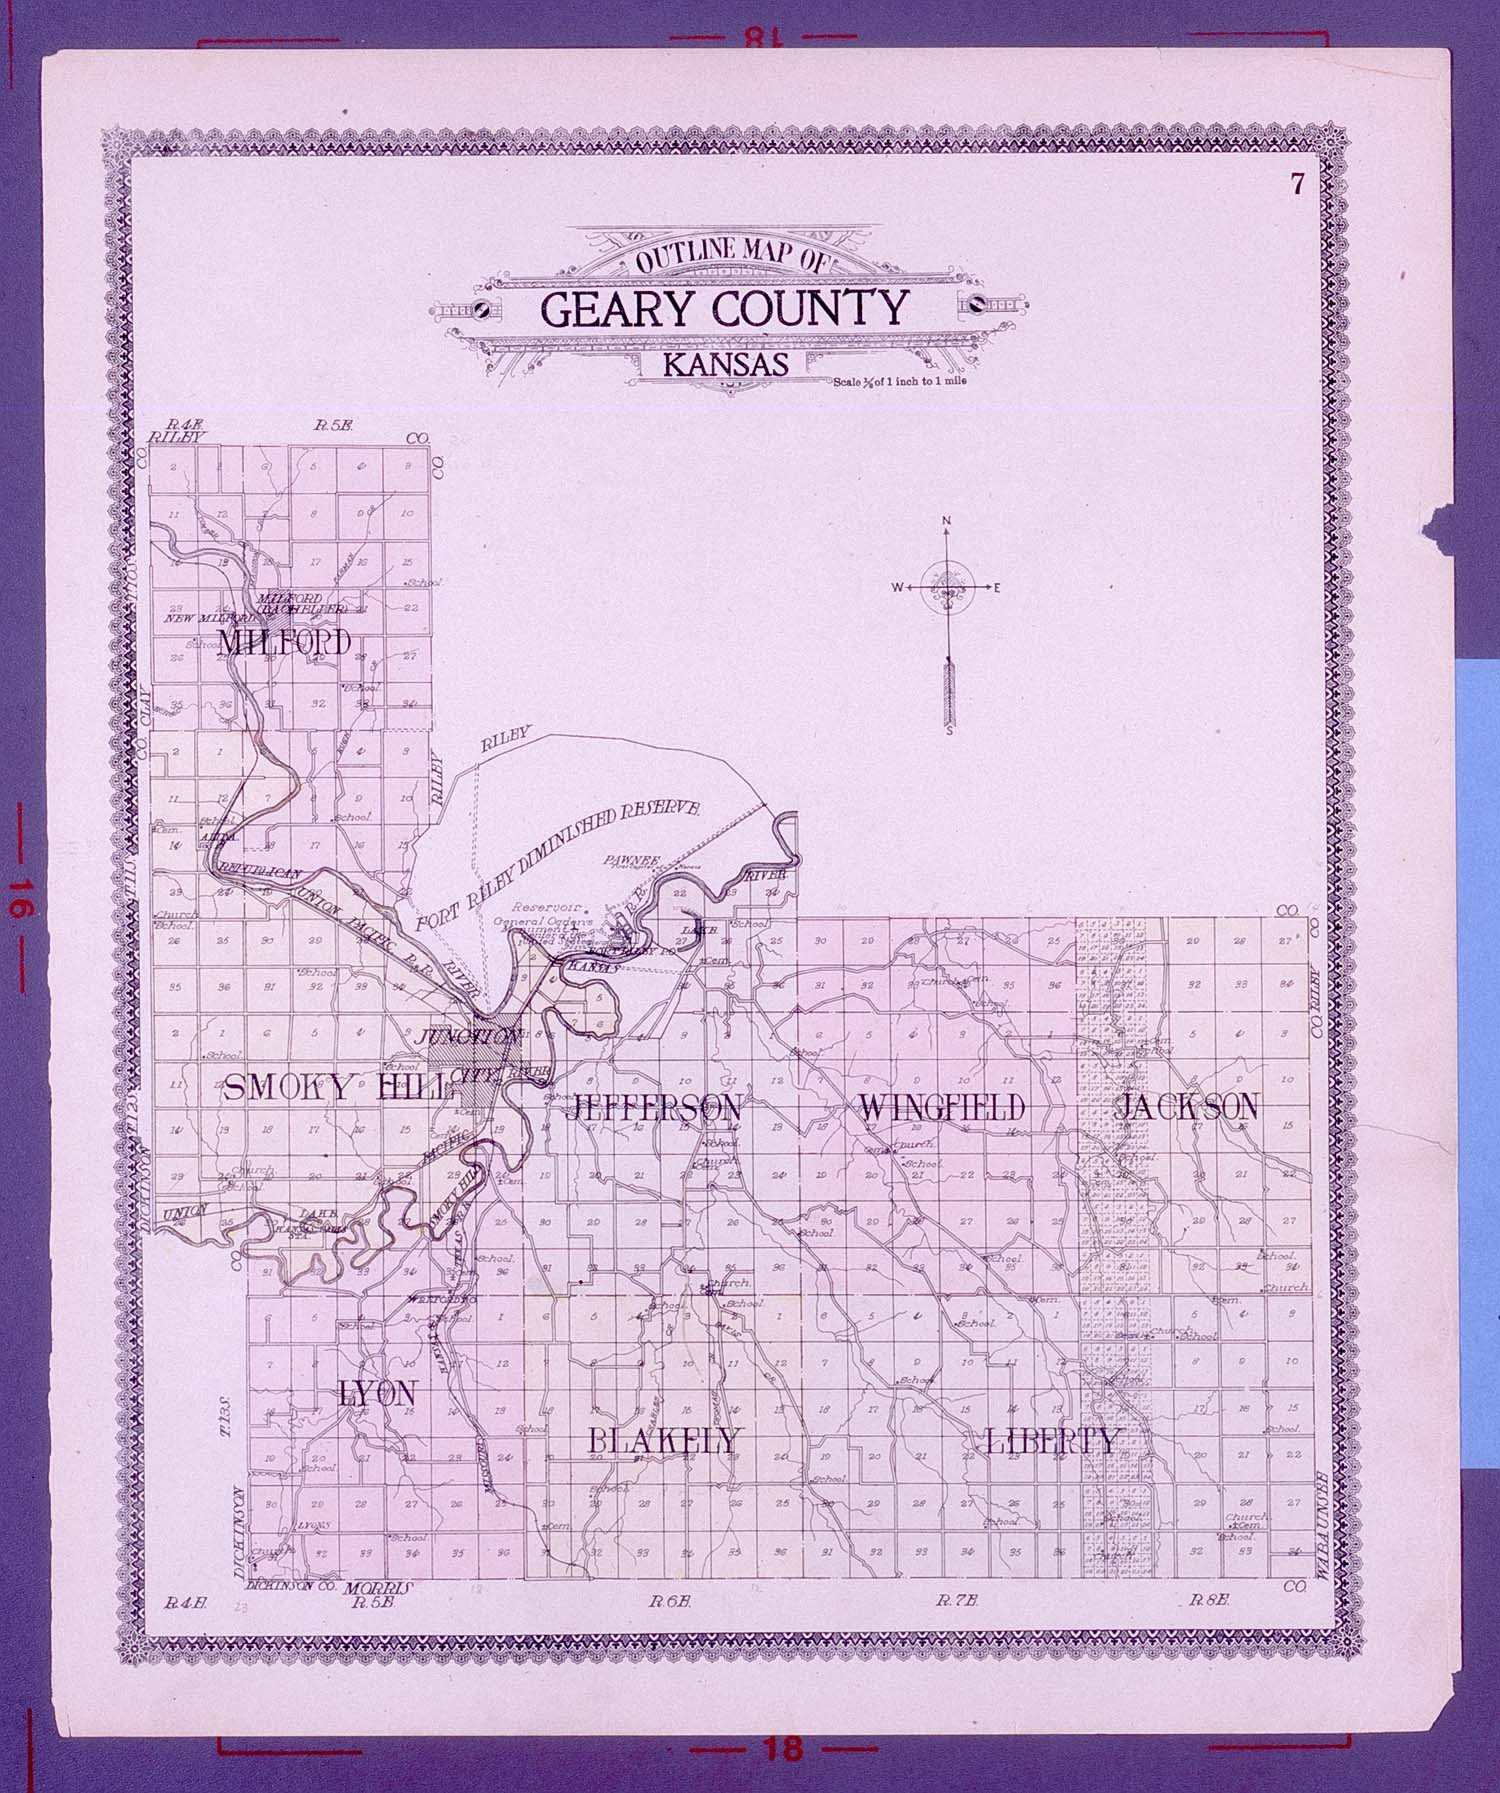 Standard atlas of Geary County, Kansas - 7